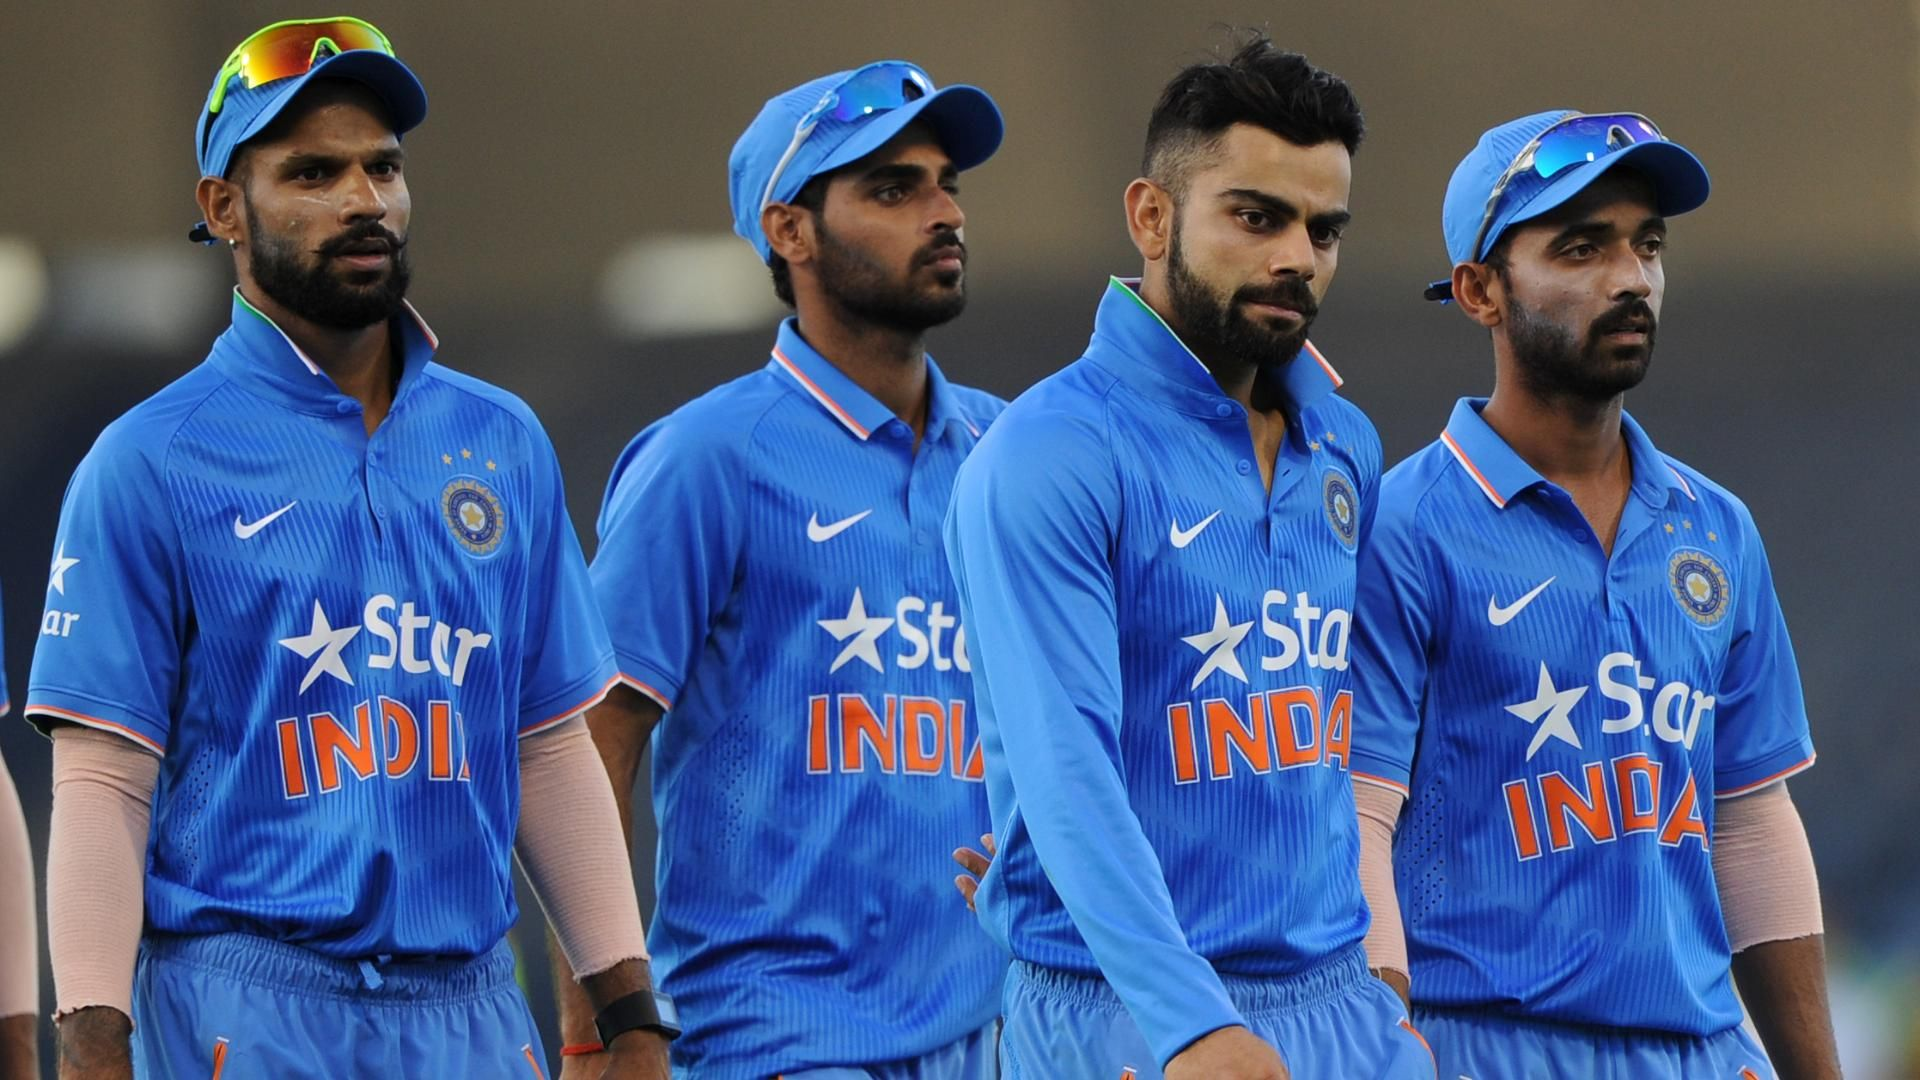 India Vs Australia Today Live Cricket Match Video